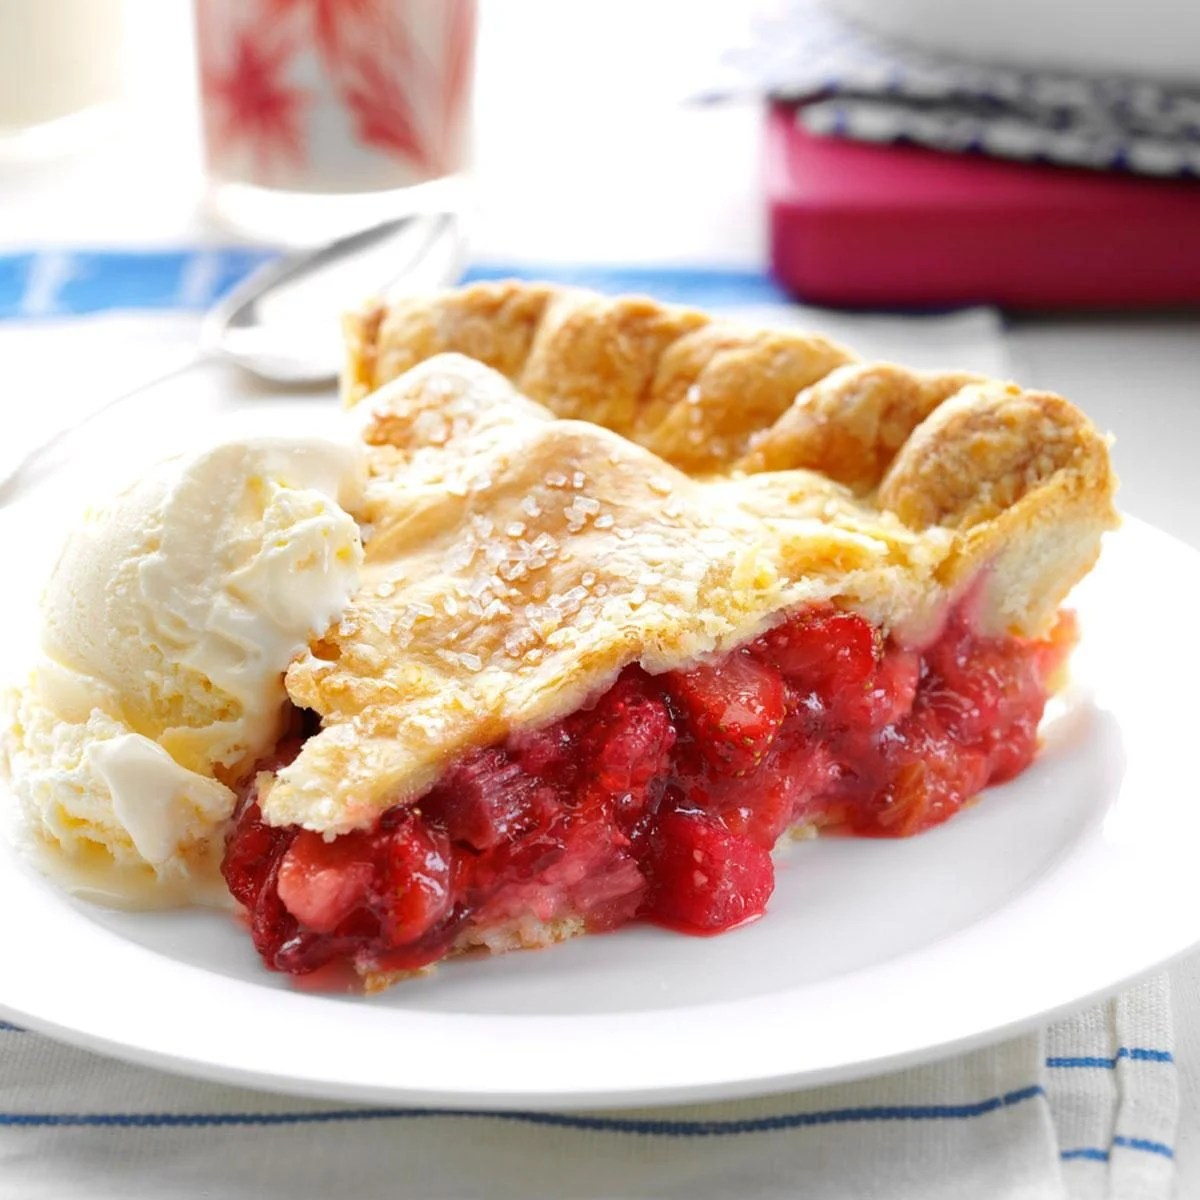 Farmhouse Rules Salad Recipes Winning Rhubarb Strawberry Pie Recipe Taste Of Home